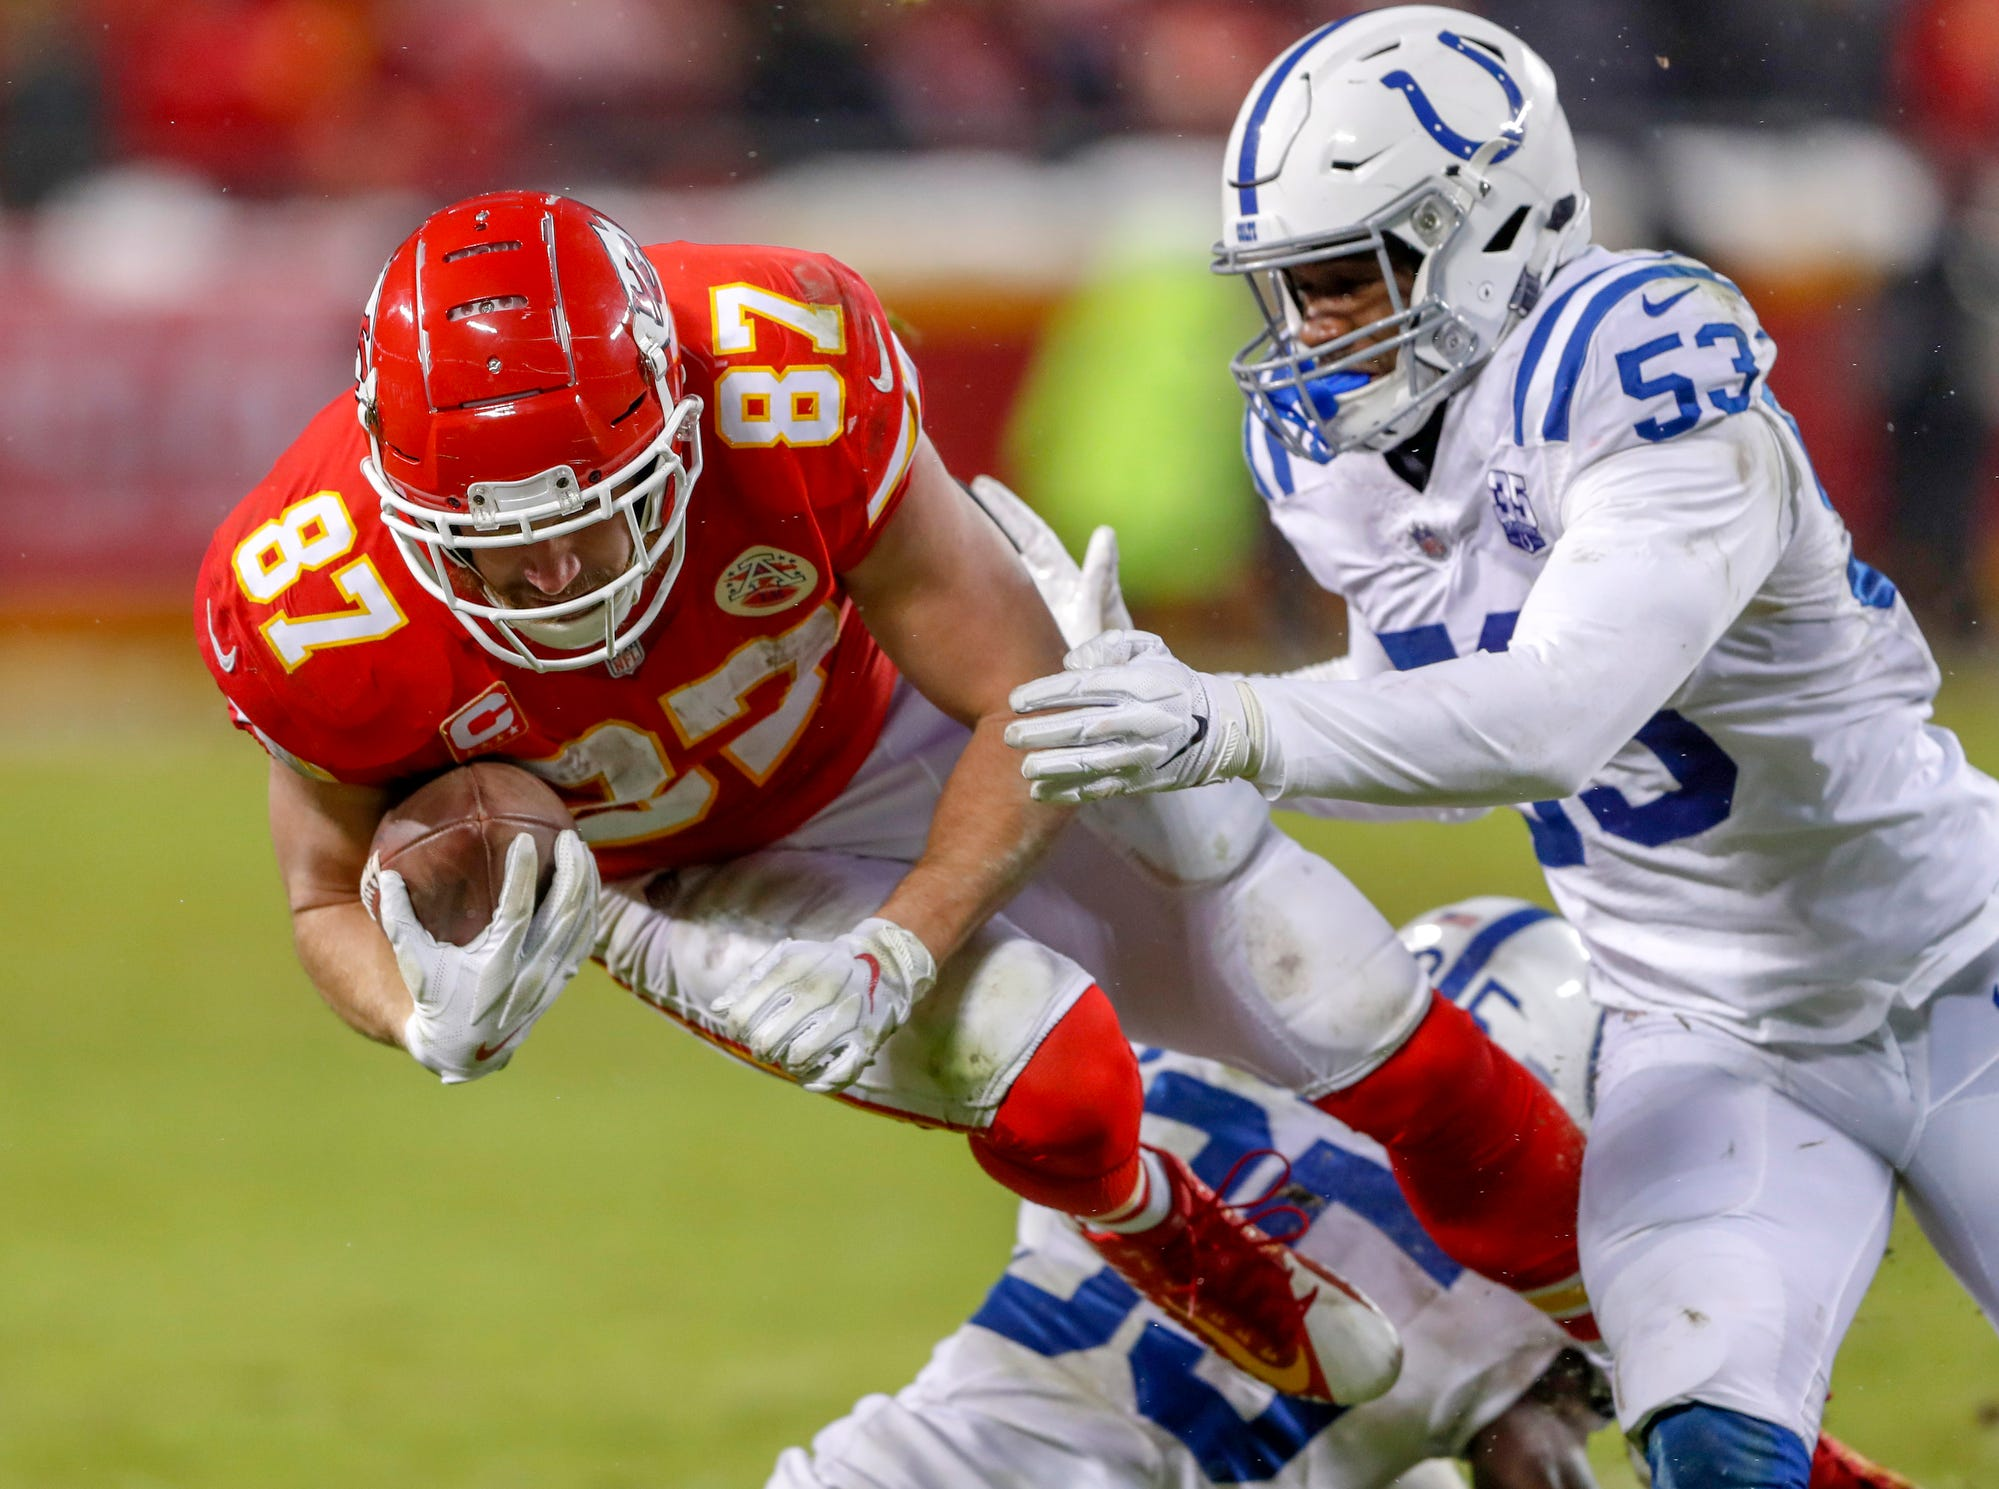 Kansas City Chiefs tight end Travis Kelce (87) gets the first down and is brought down shortly after by Indianapolis Colts outside linebacker Darius Leonard (53) and cornerback Pierre Desir (35)  in the third quarter at Arrowhead Stadium in Kansas City, Mo., on Saturday, Jan. 12, 2019.